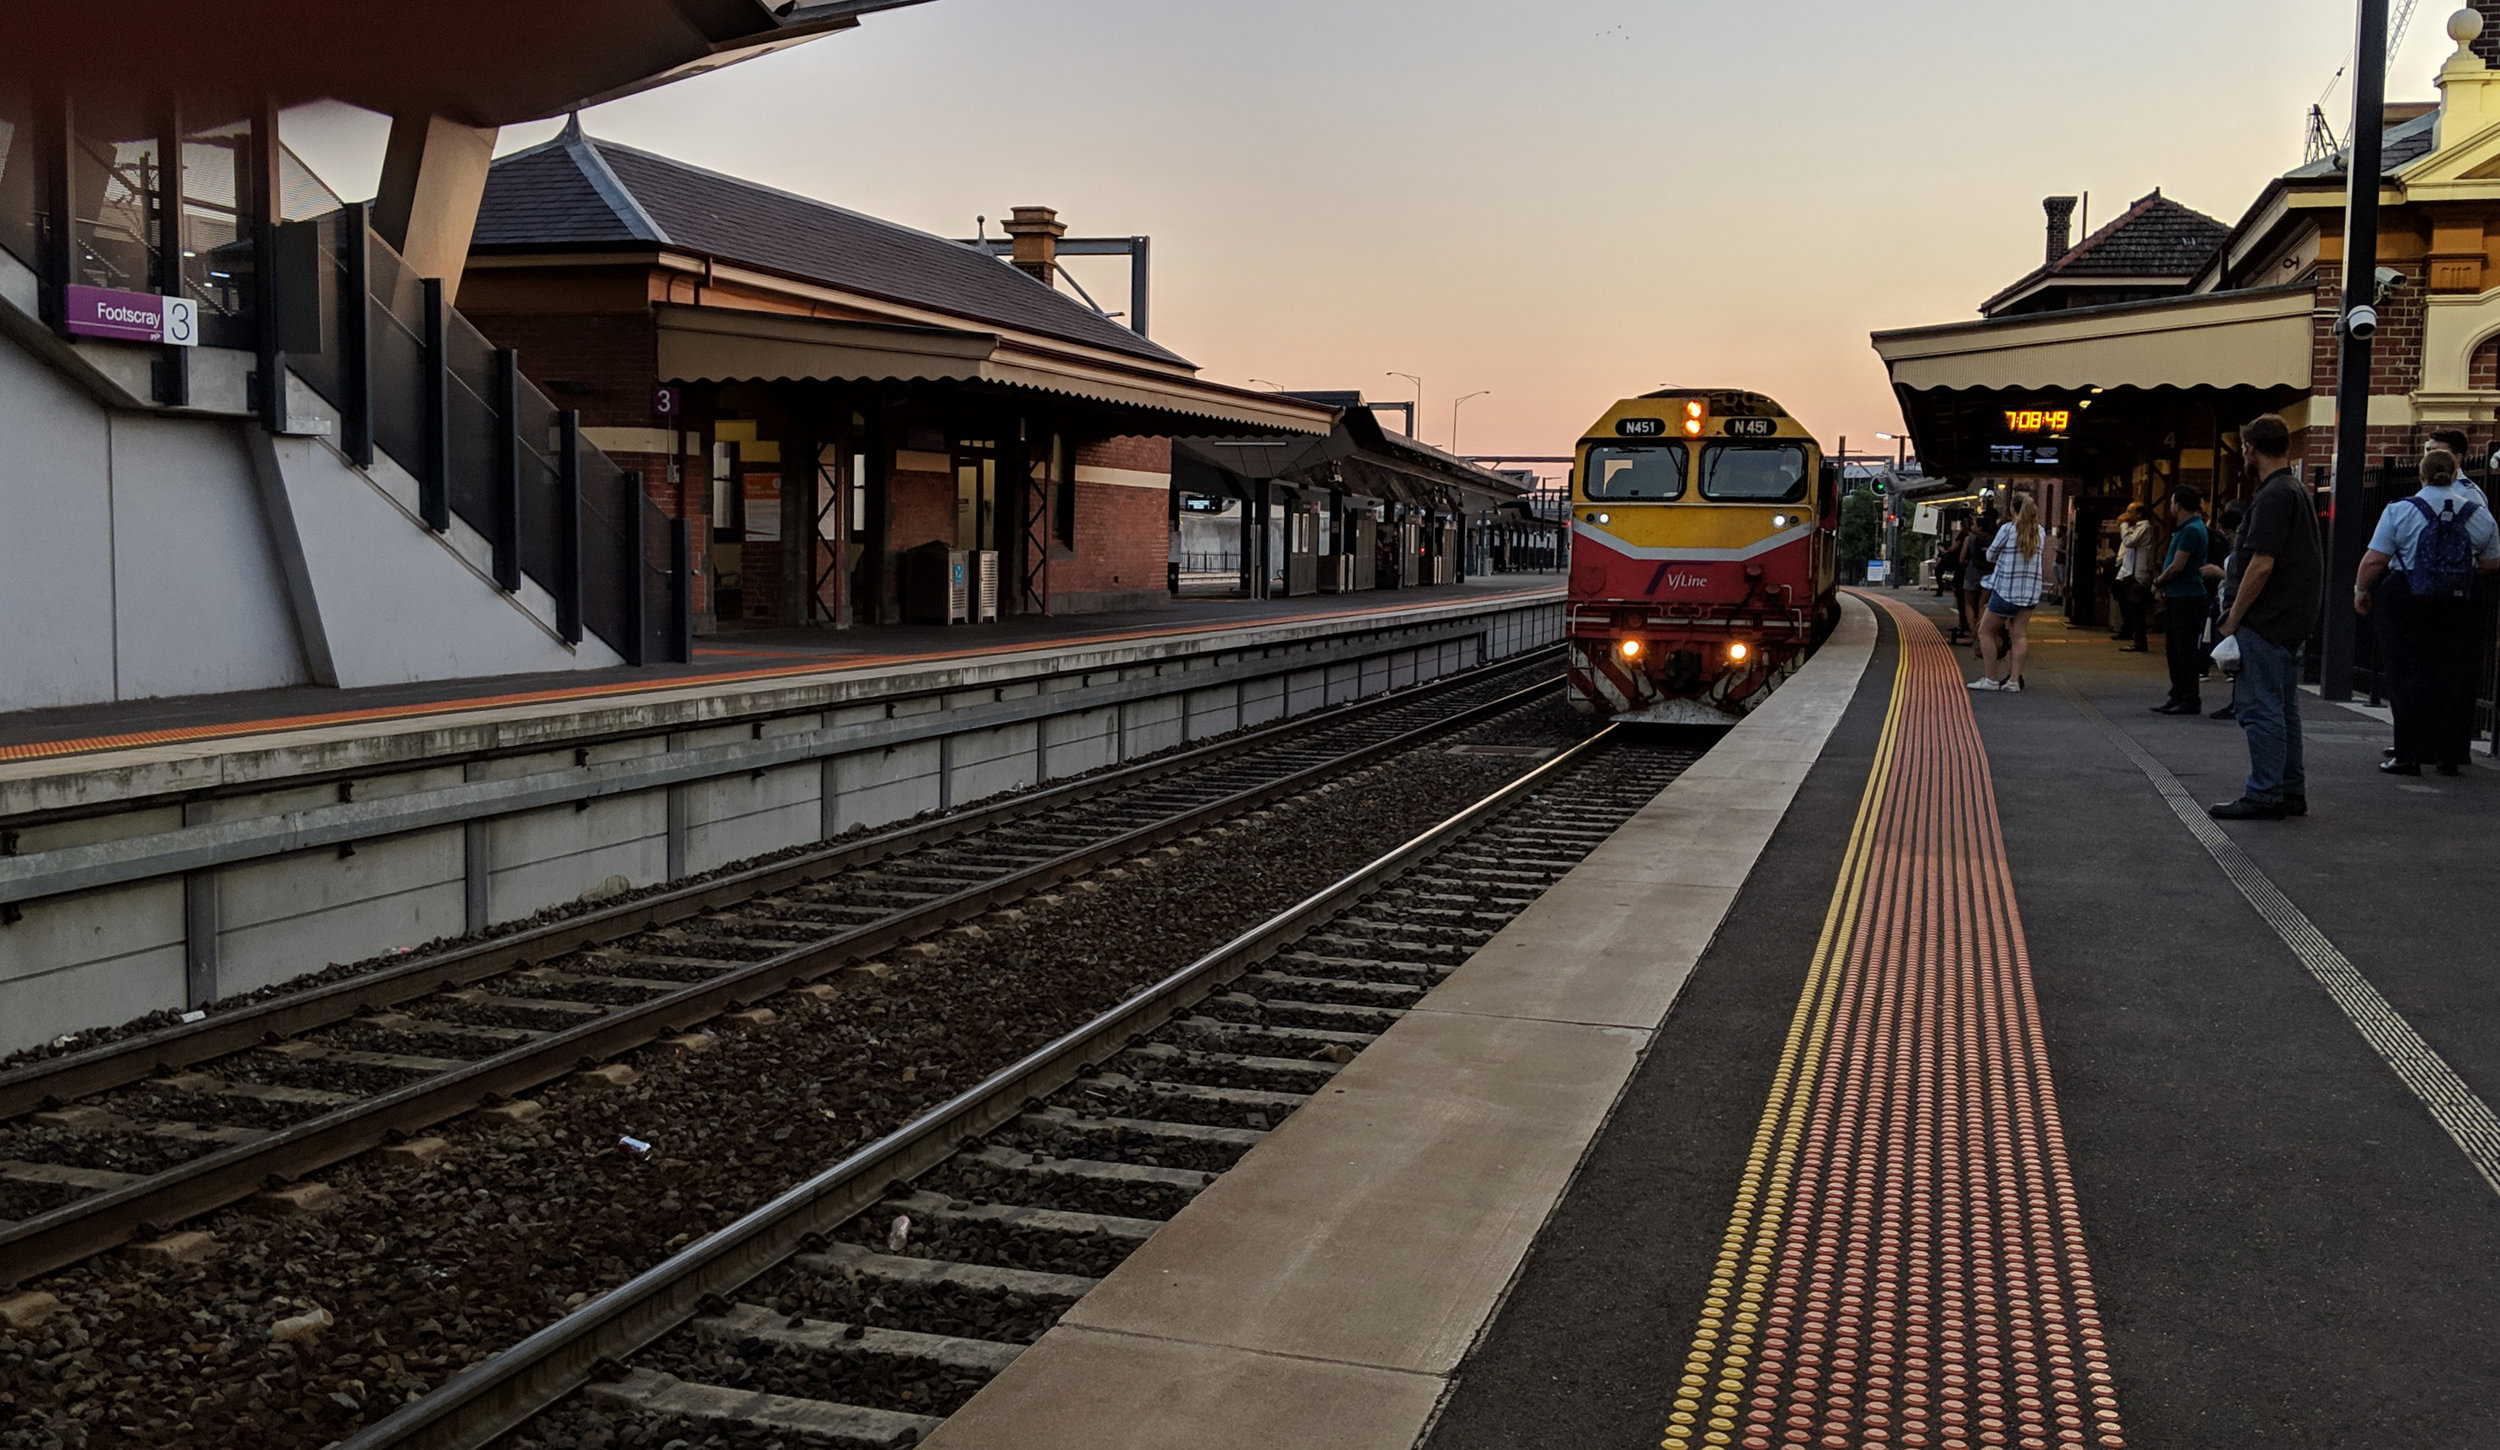 Catching the first train out of Footscray railway station.